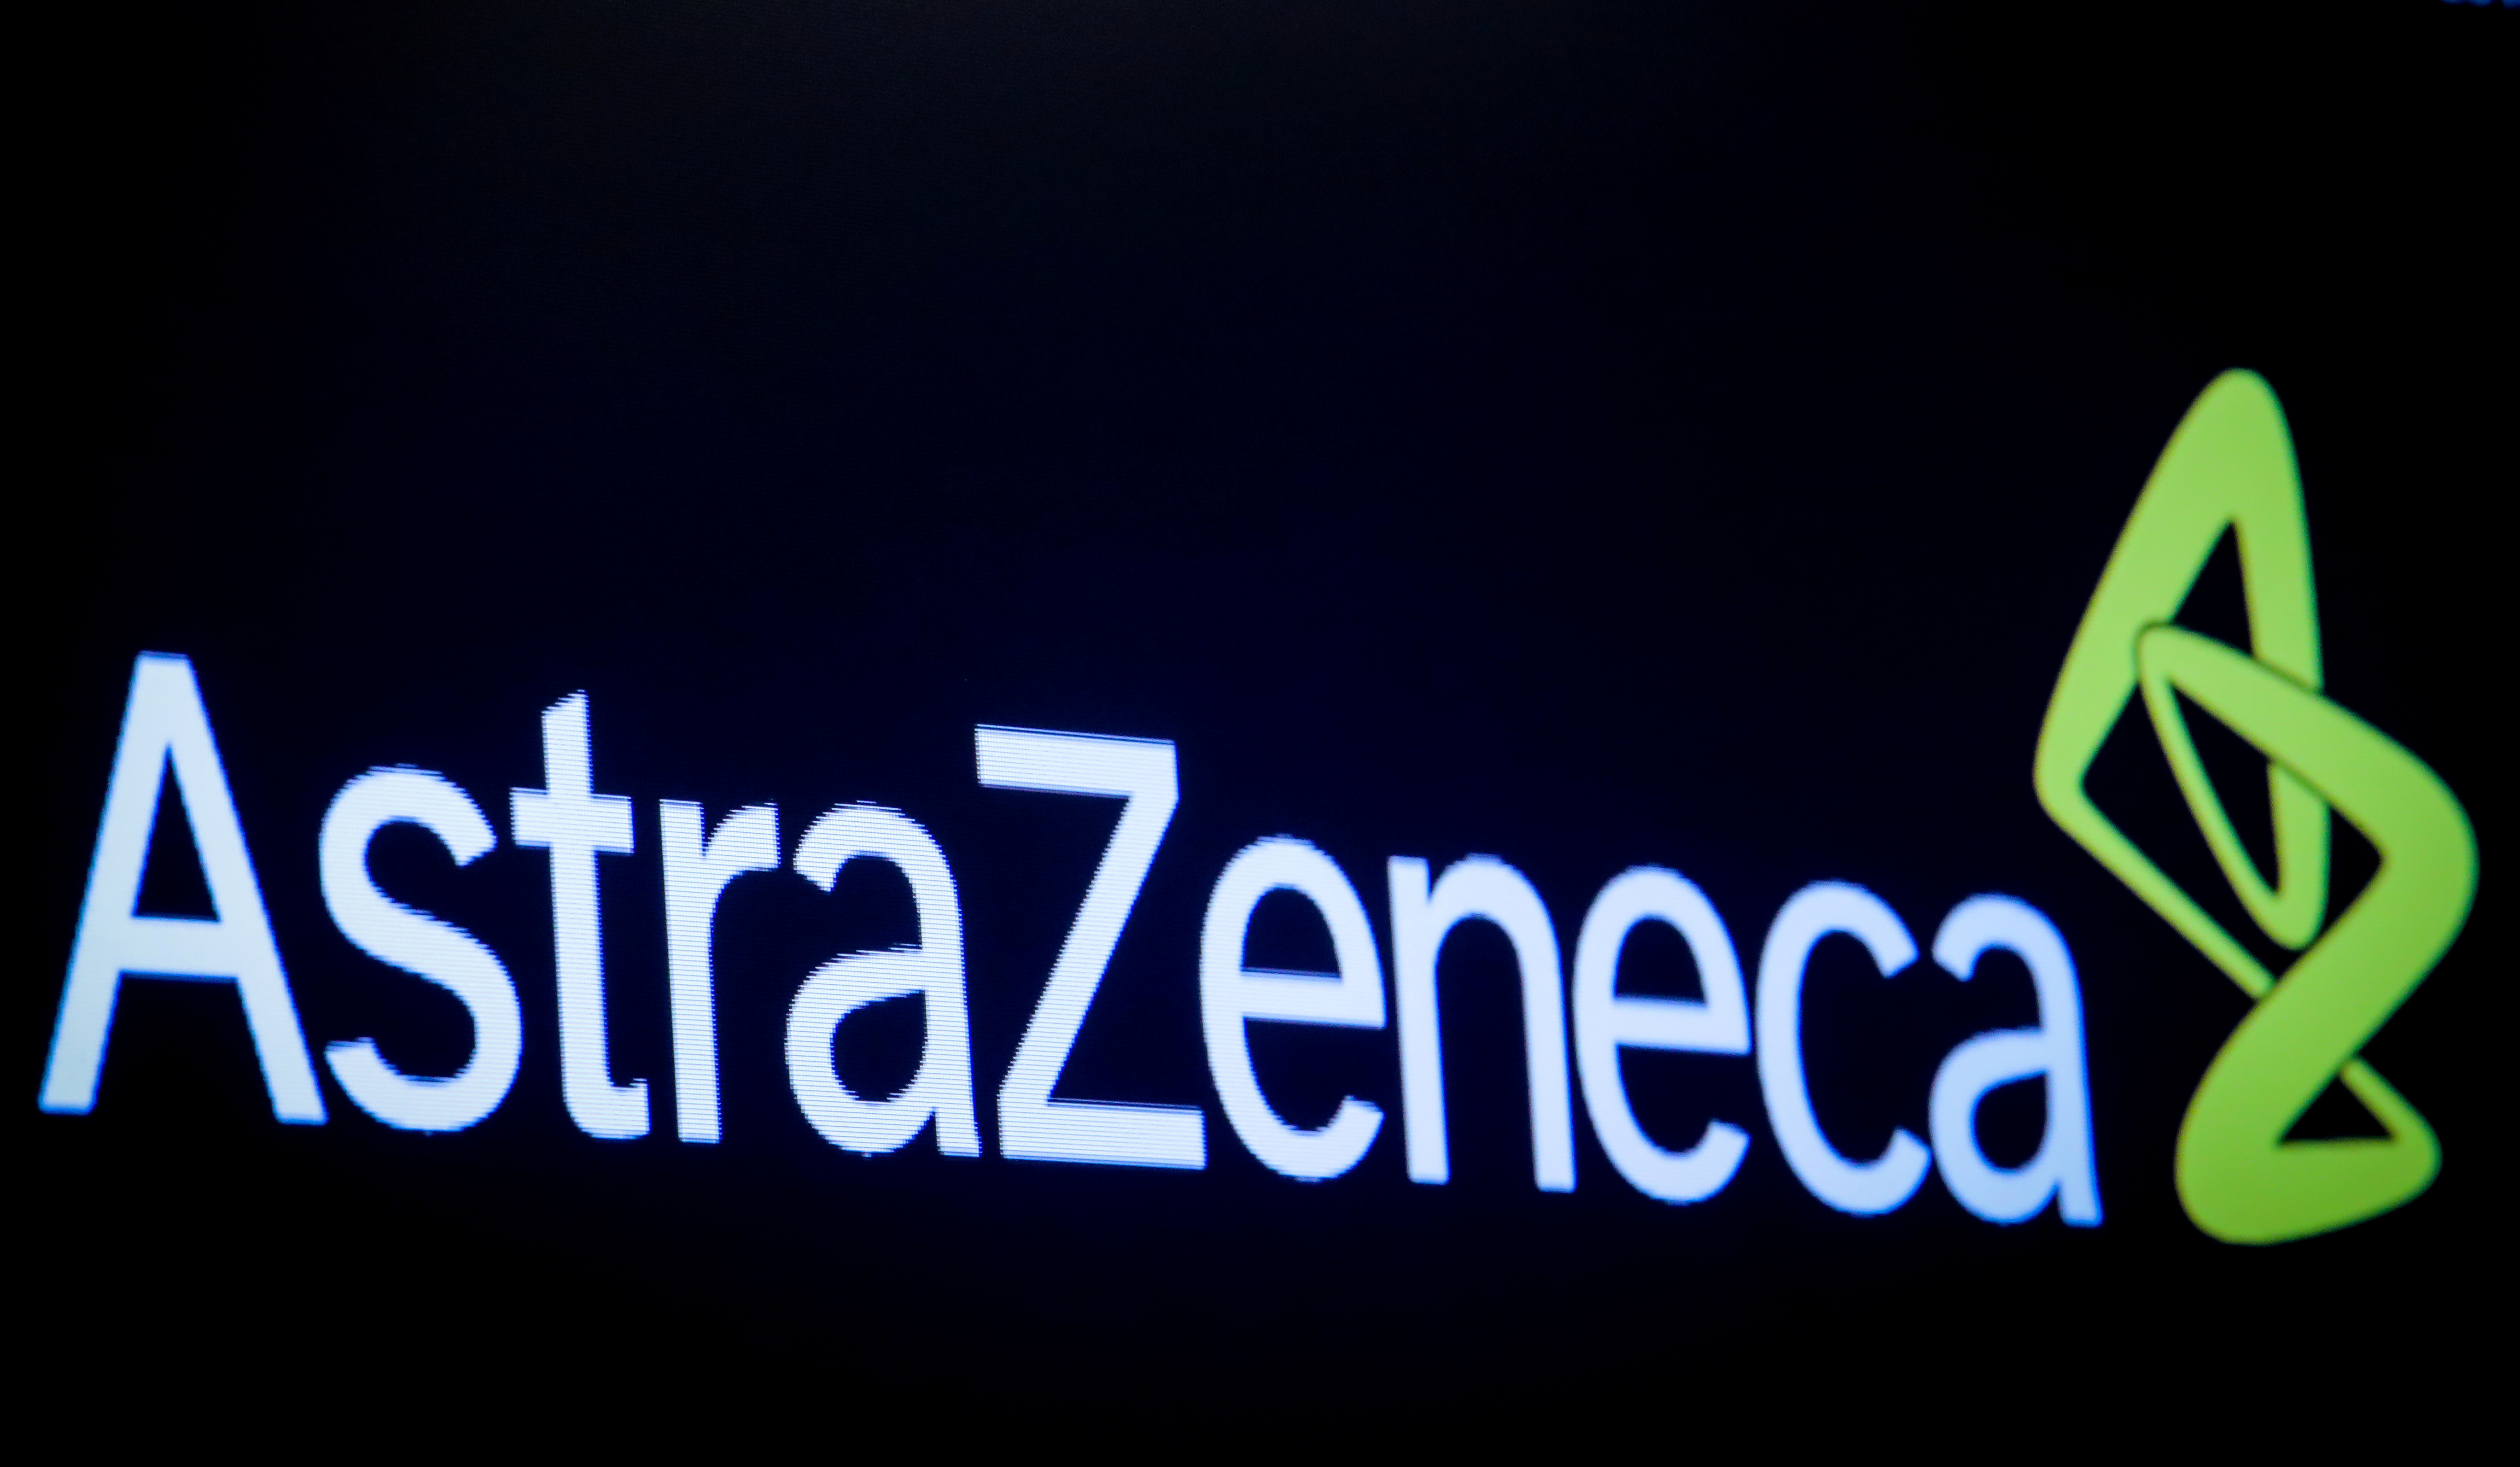 The company logo for pharmaceutical company AstraZeneca is displayed on a screen on the floor at the New York Stock Exchange (NYSE) in New York, U.S., April 8, 2019. REUTERS/Brendan McDermid/File Photo